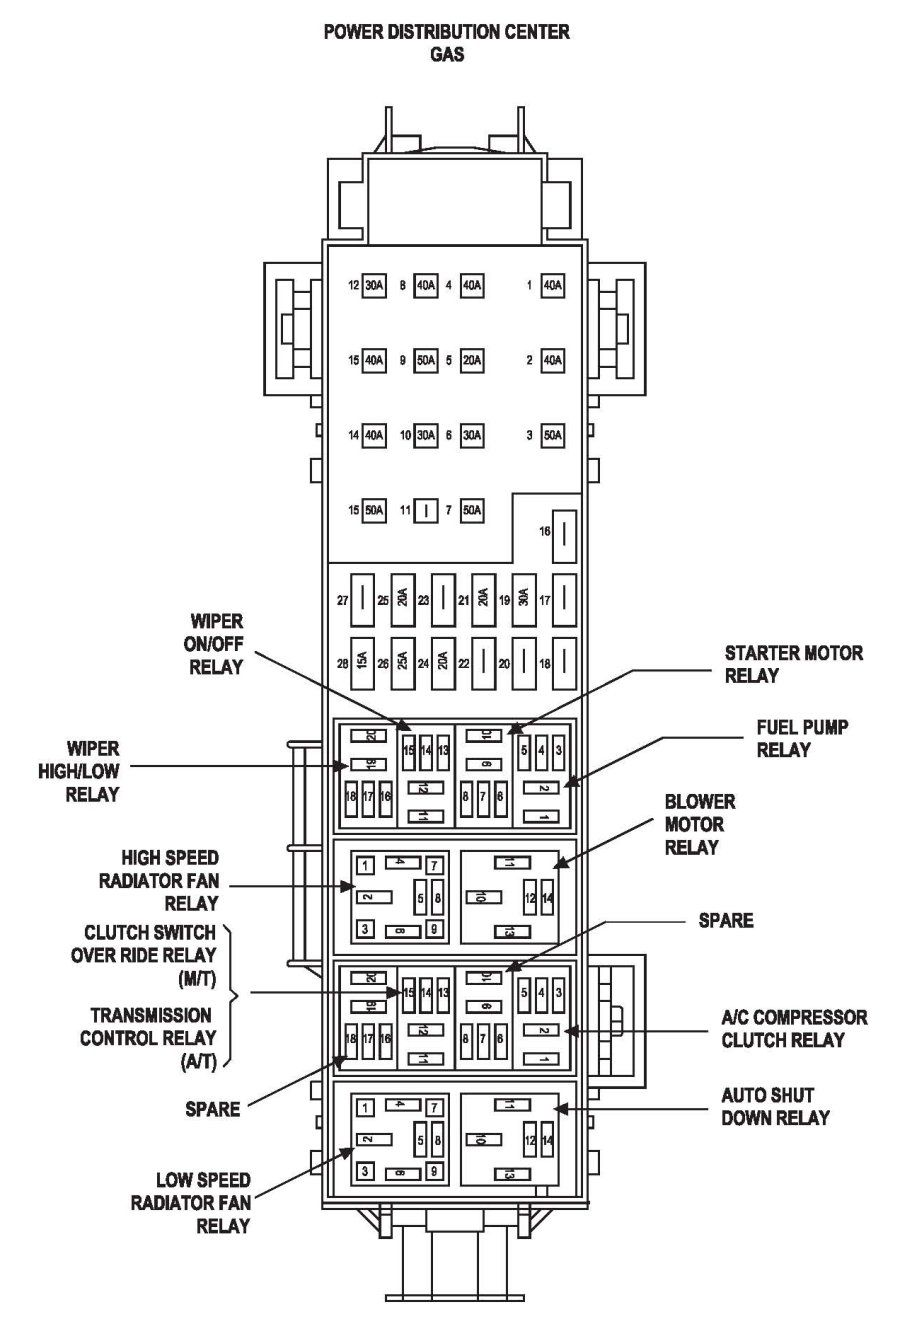 b3536c3739783eb19f827744cc42c3c4 jeep liberty fuse box diagram image details jeep liberty 2007 jeep commander fuse box diagram at crackthecode.co